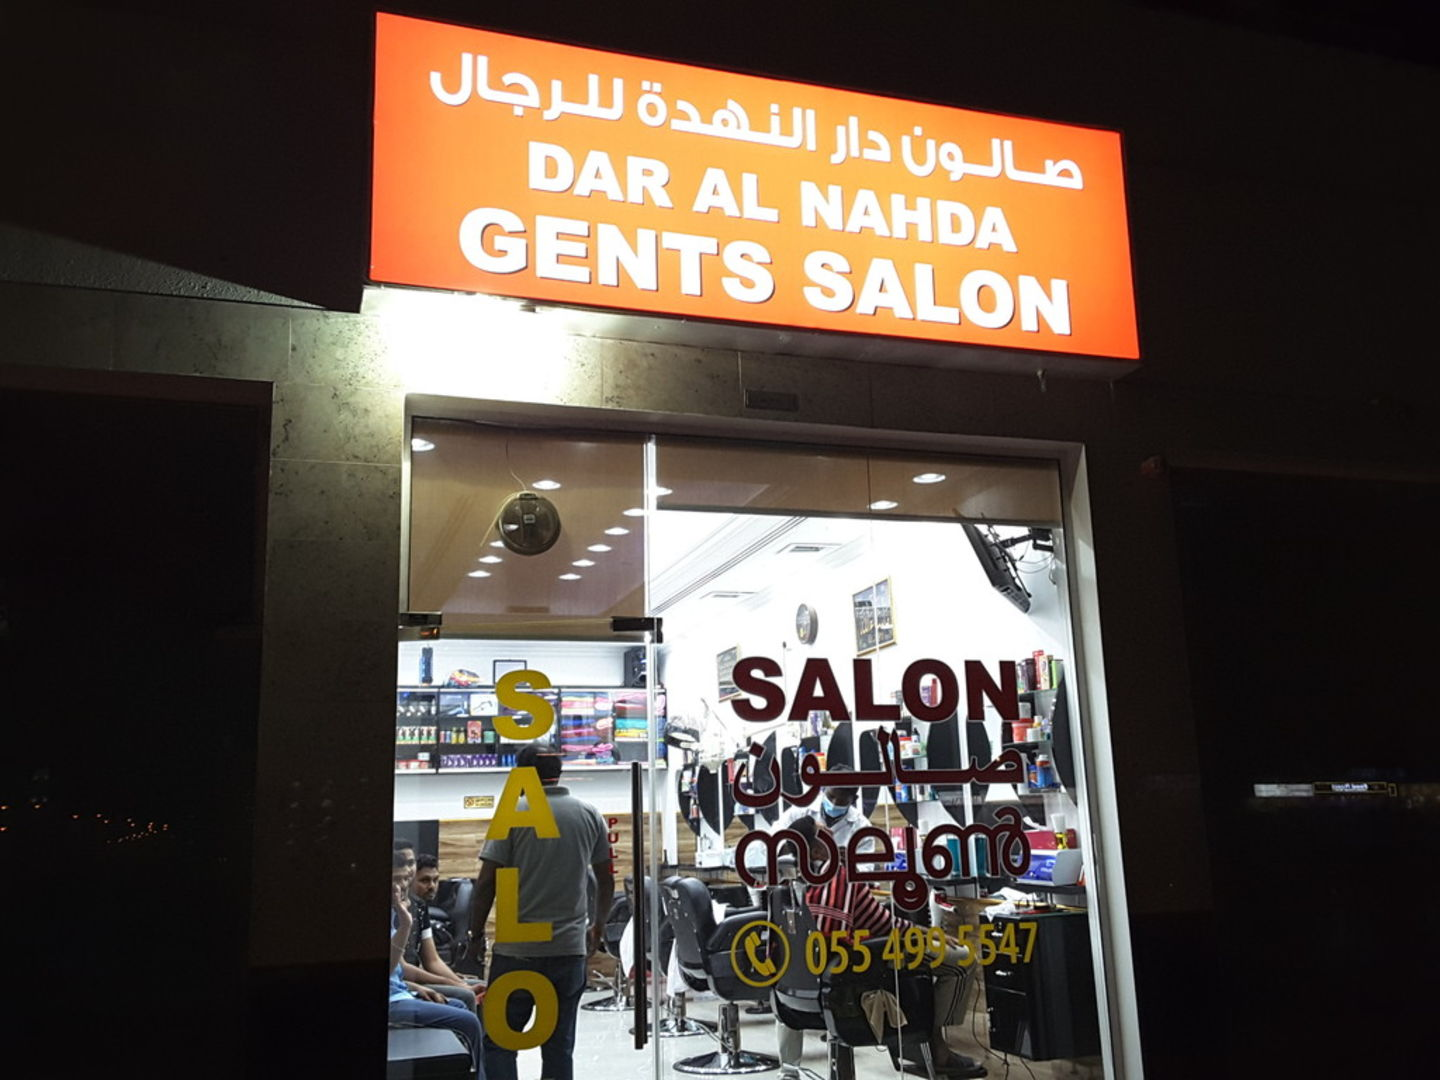 HiDubai-business-dar-al-nahda-gents-salon-beauty-wellness-health-beauty-salons-al-nahda-1-dubai-2